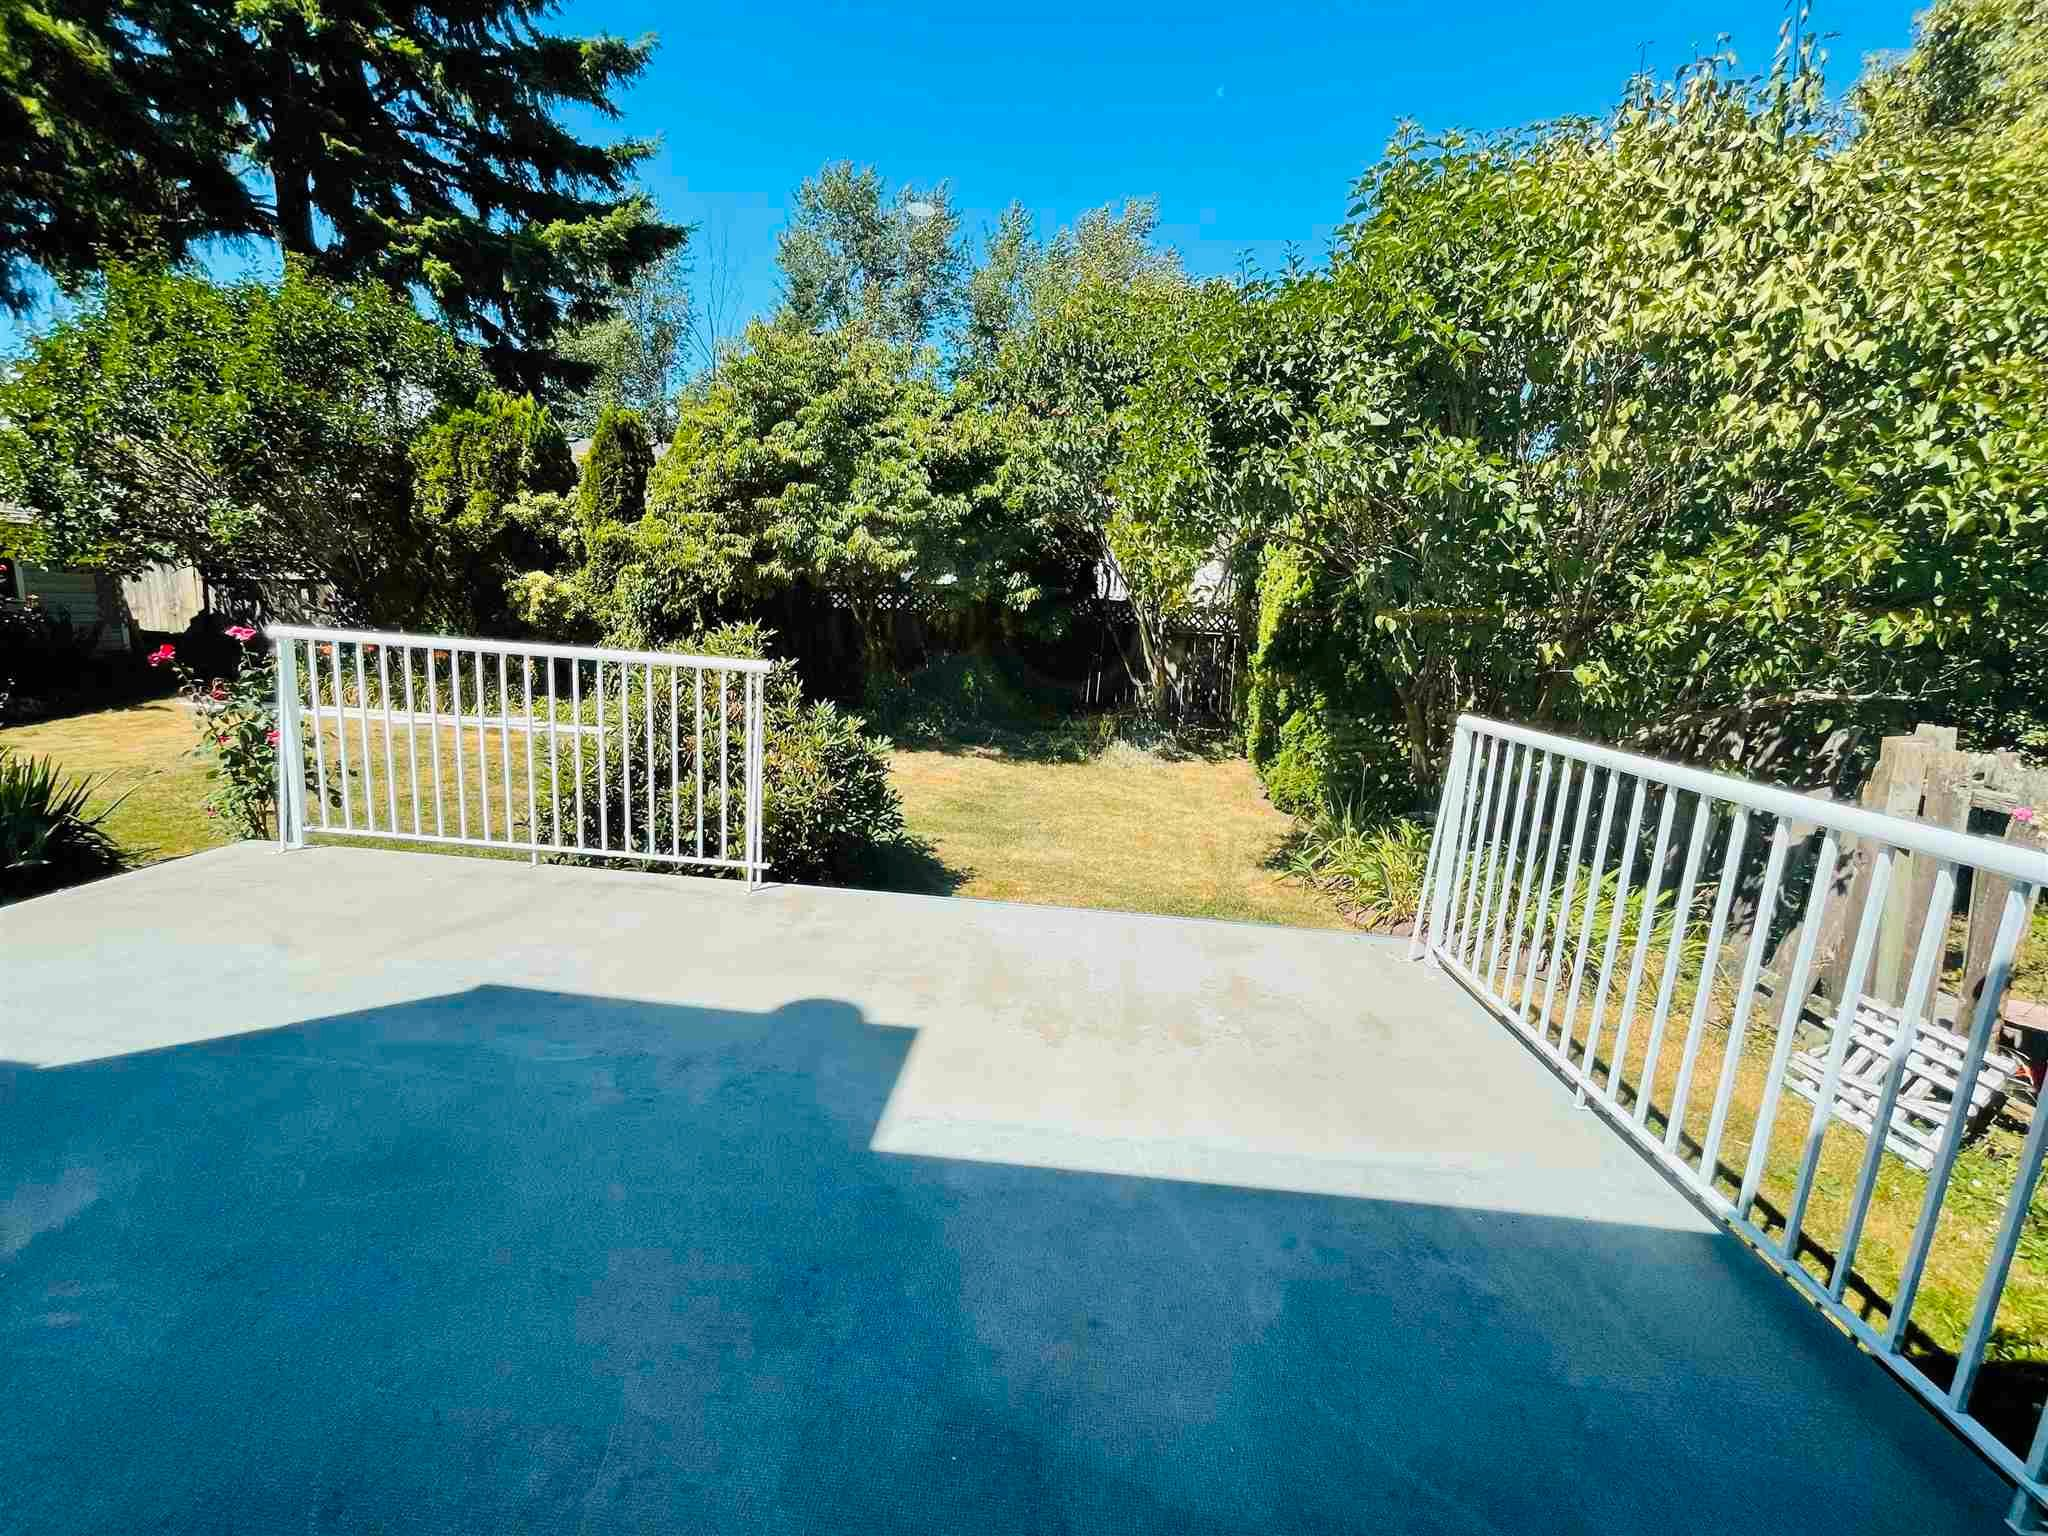 Main Photo: 8721 AUGUST Drive in Surrey: Fleetwood Tynehead House for sale : MLS®# R2601939